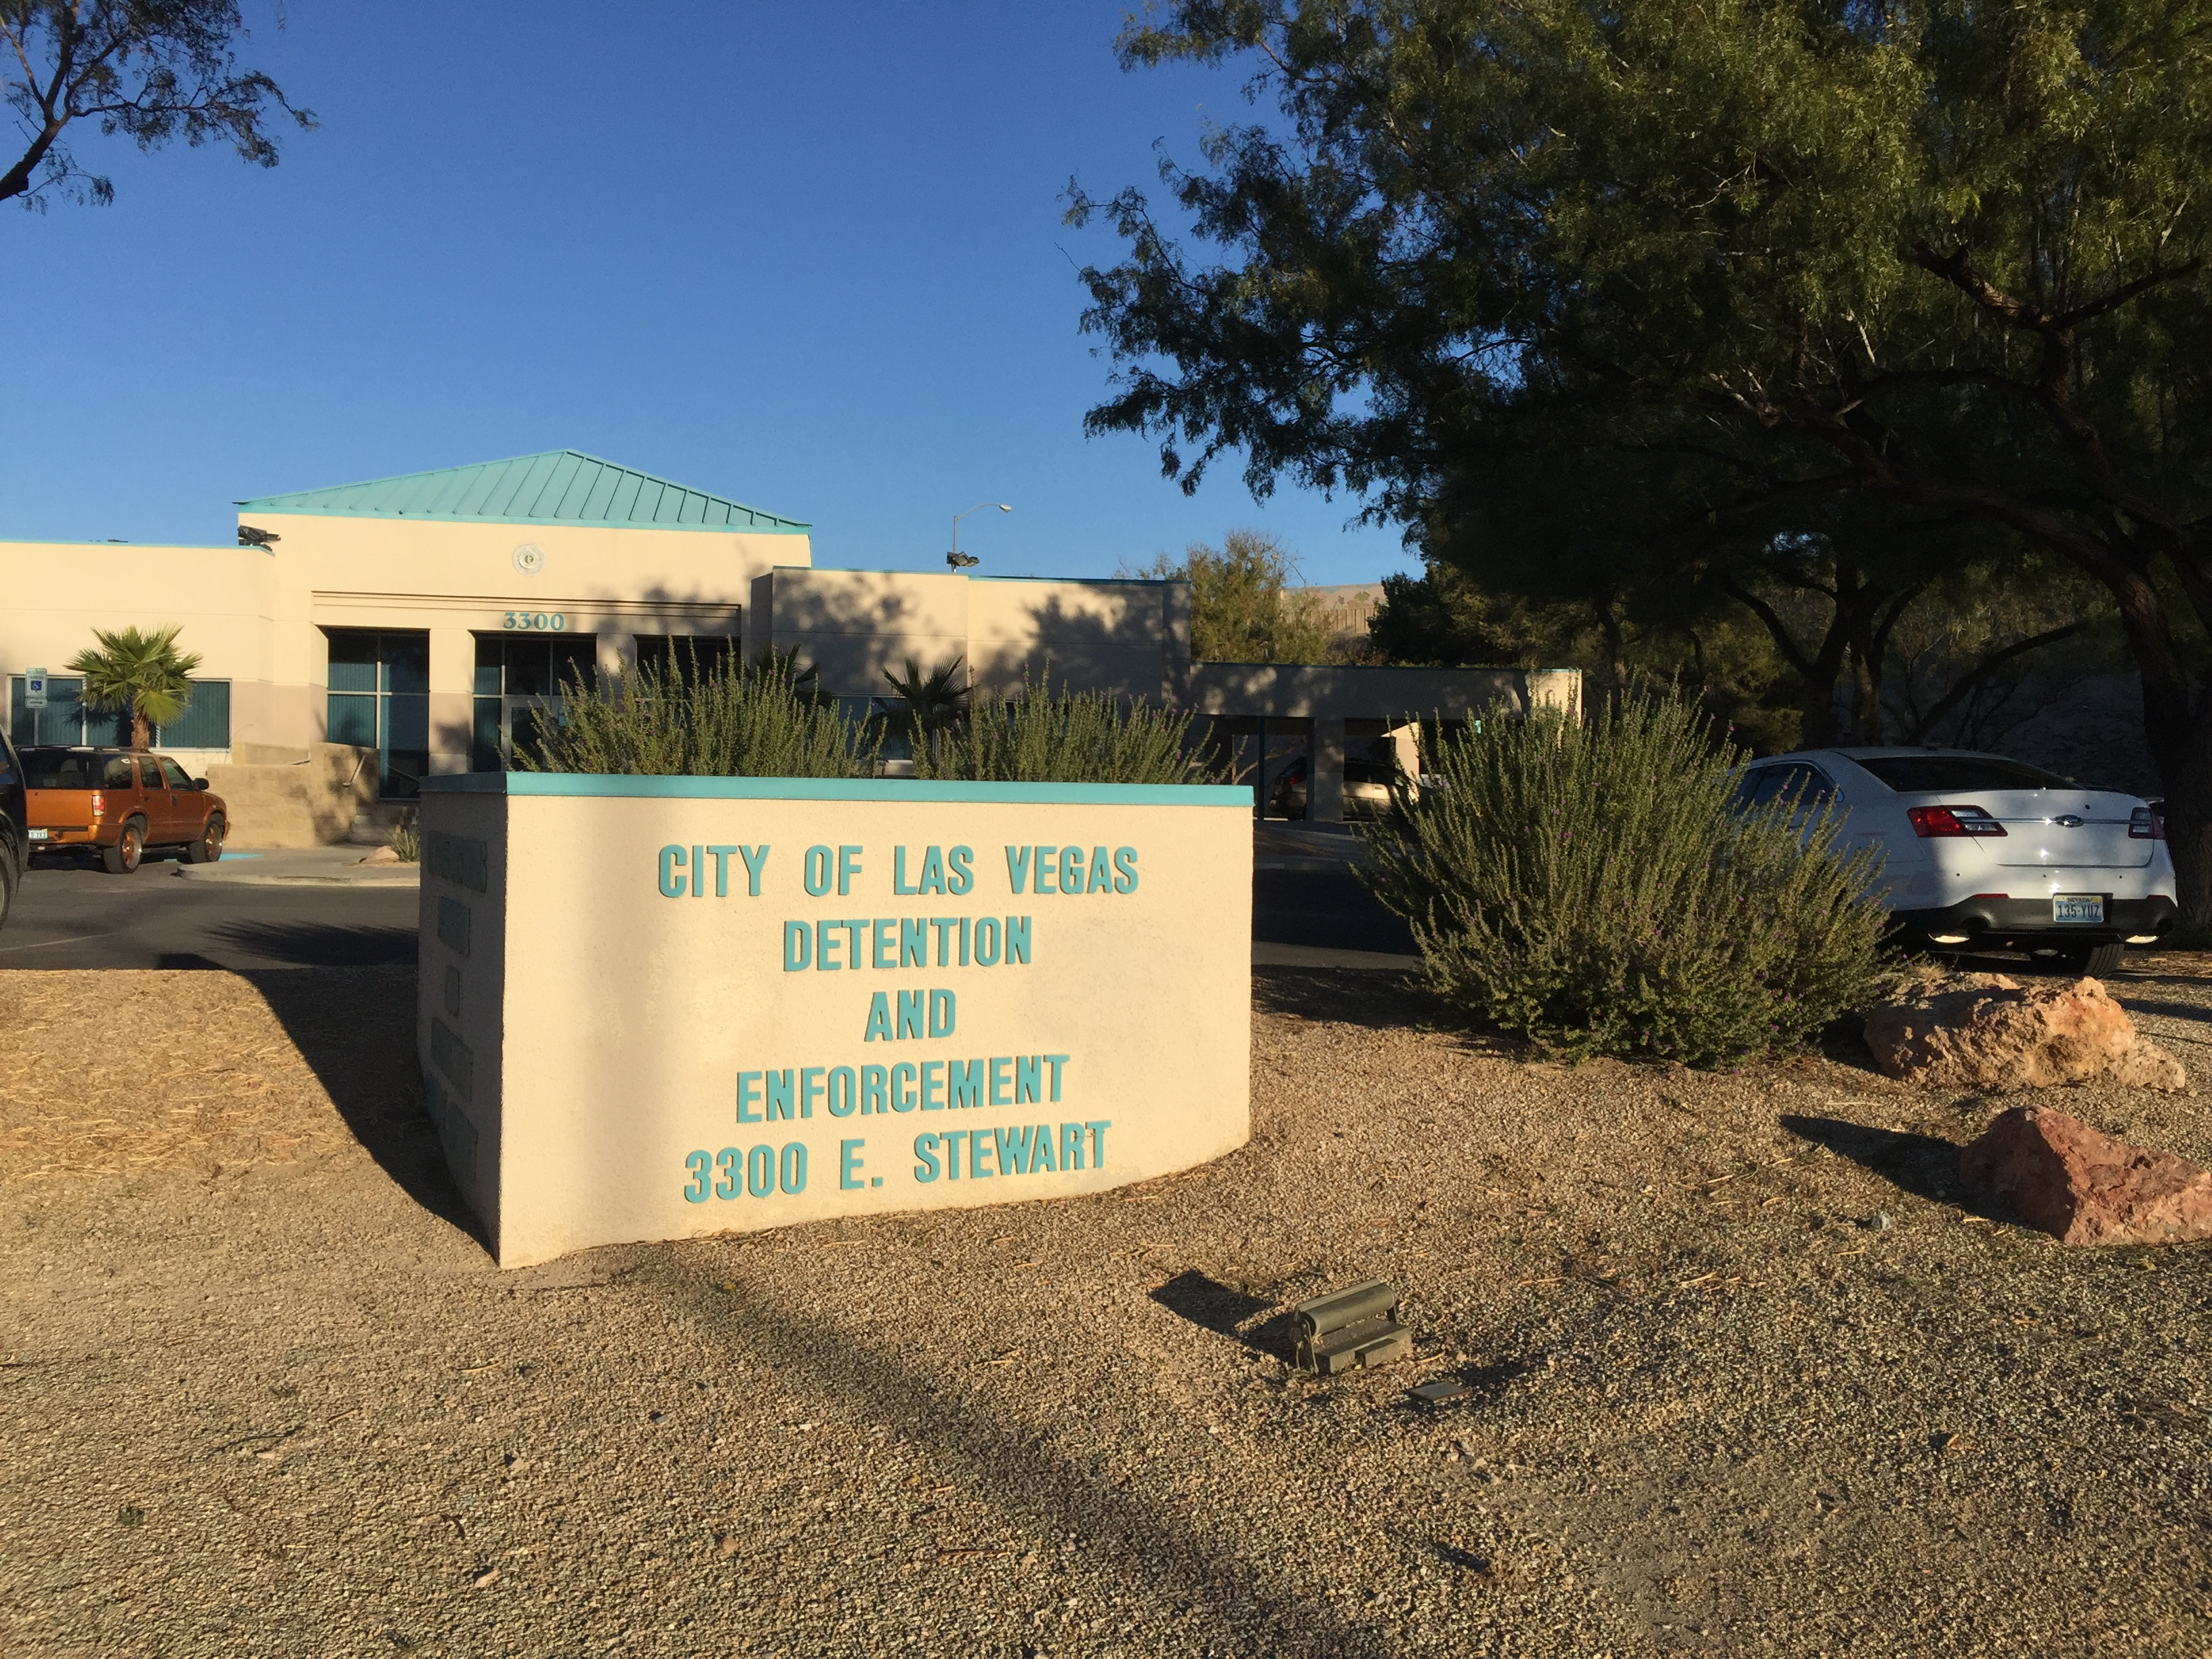 Address of the City of Las Vegas Jail